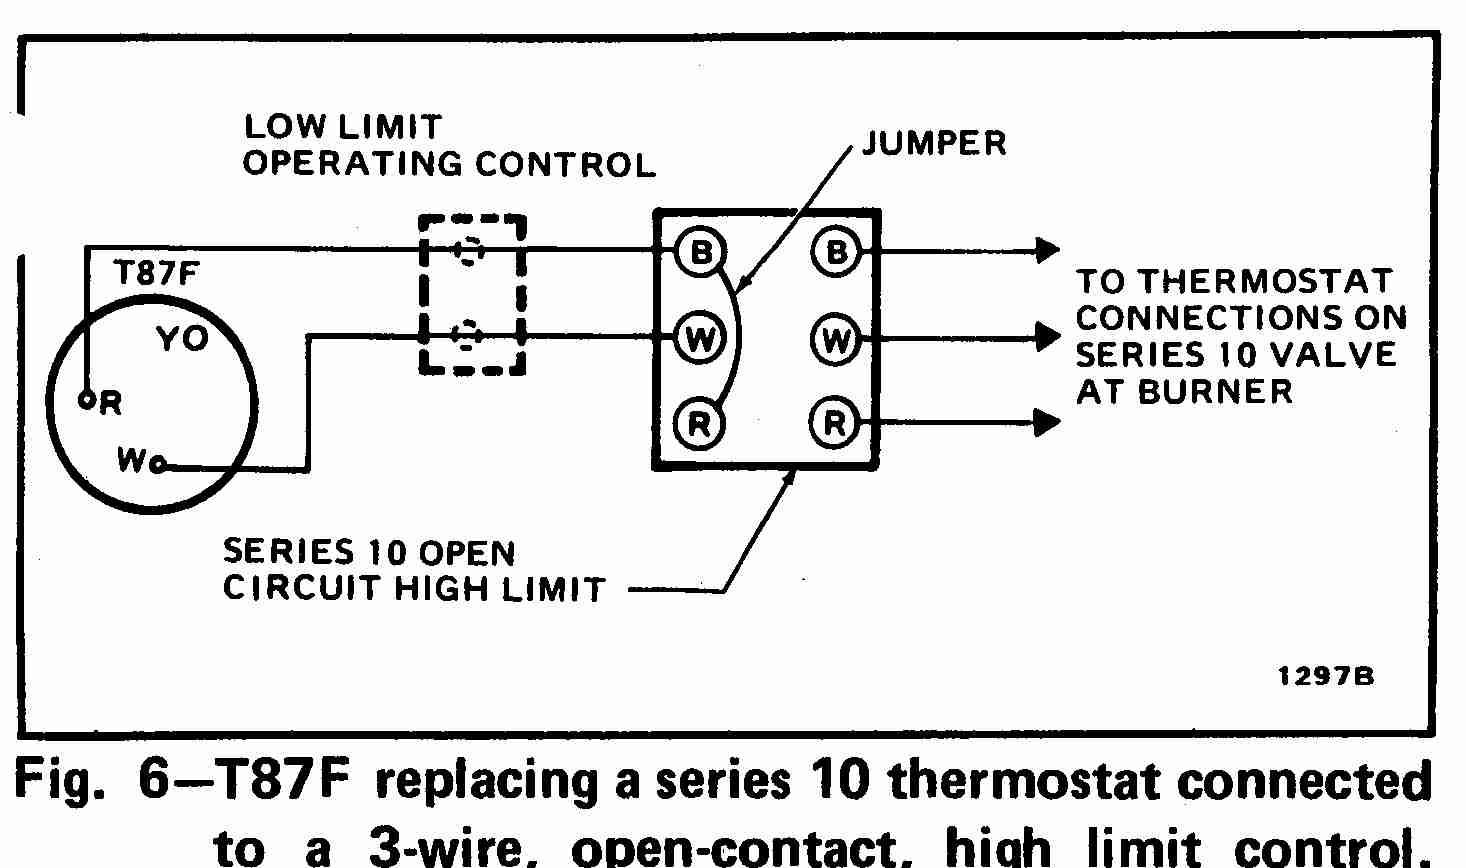 Thermostats Wiring Diagrams List Of Schematic Circuit Diagram Emerson Thermostat House Room For Hvac Systems Rh Inspectapedia Com Pdf